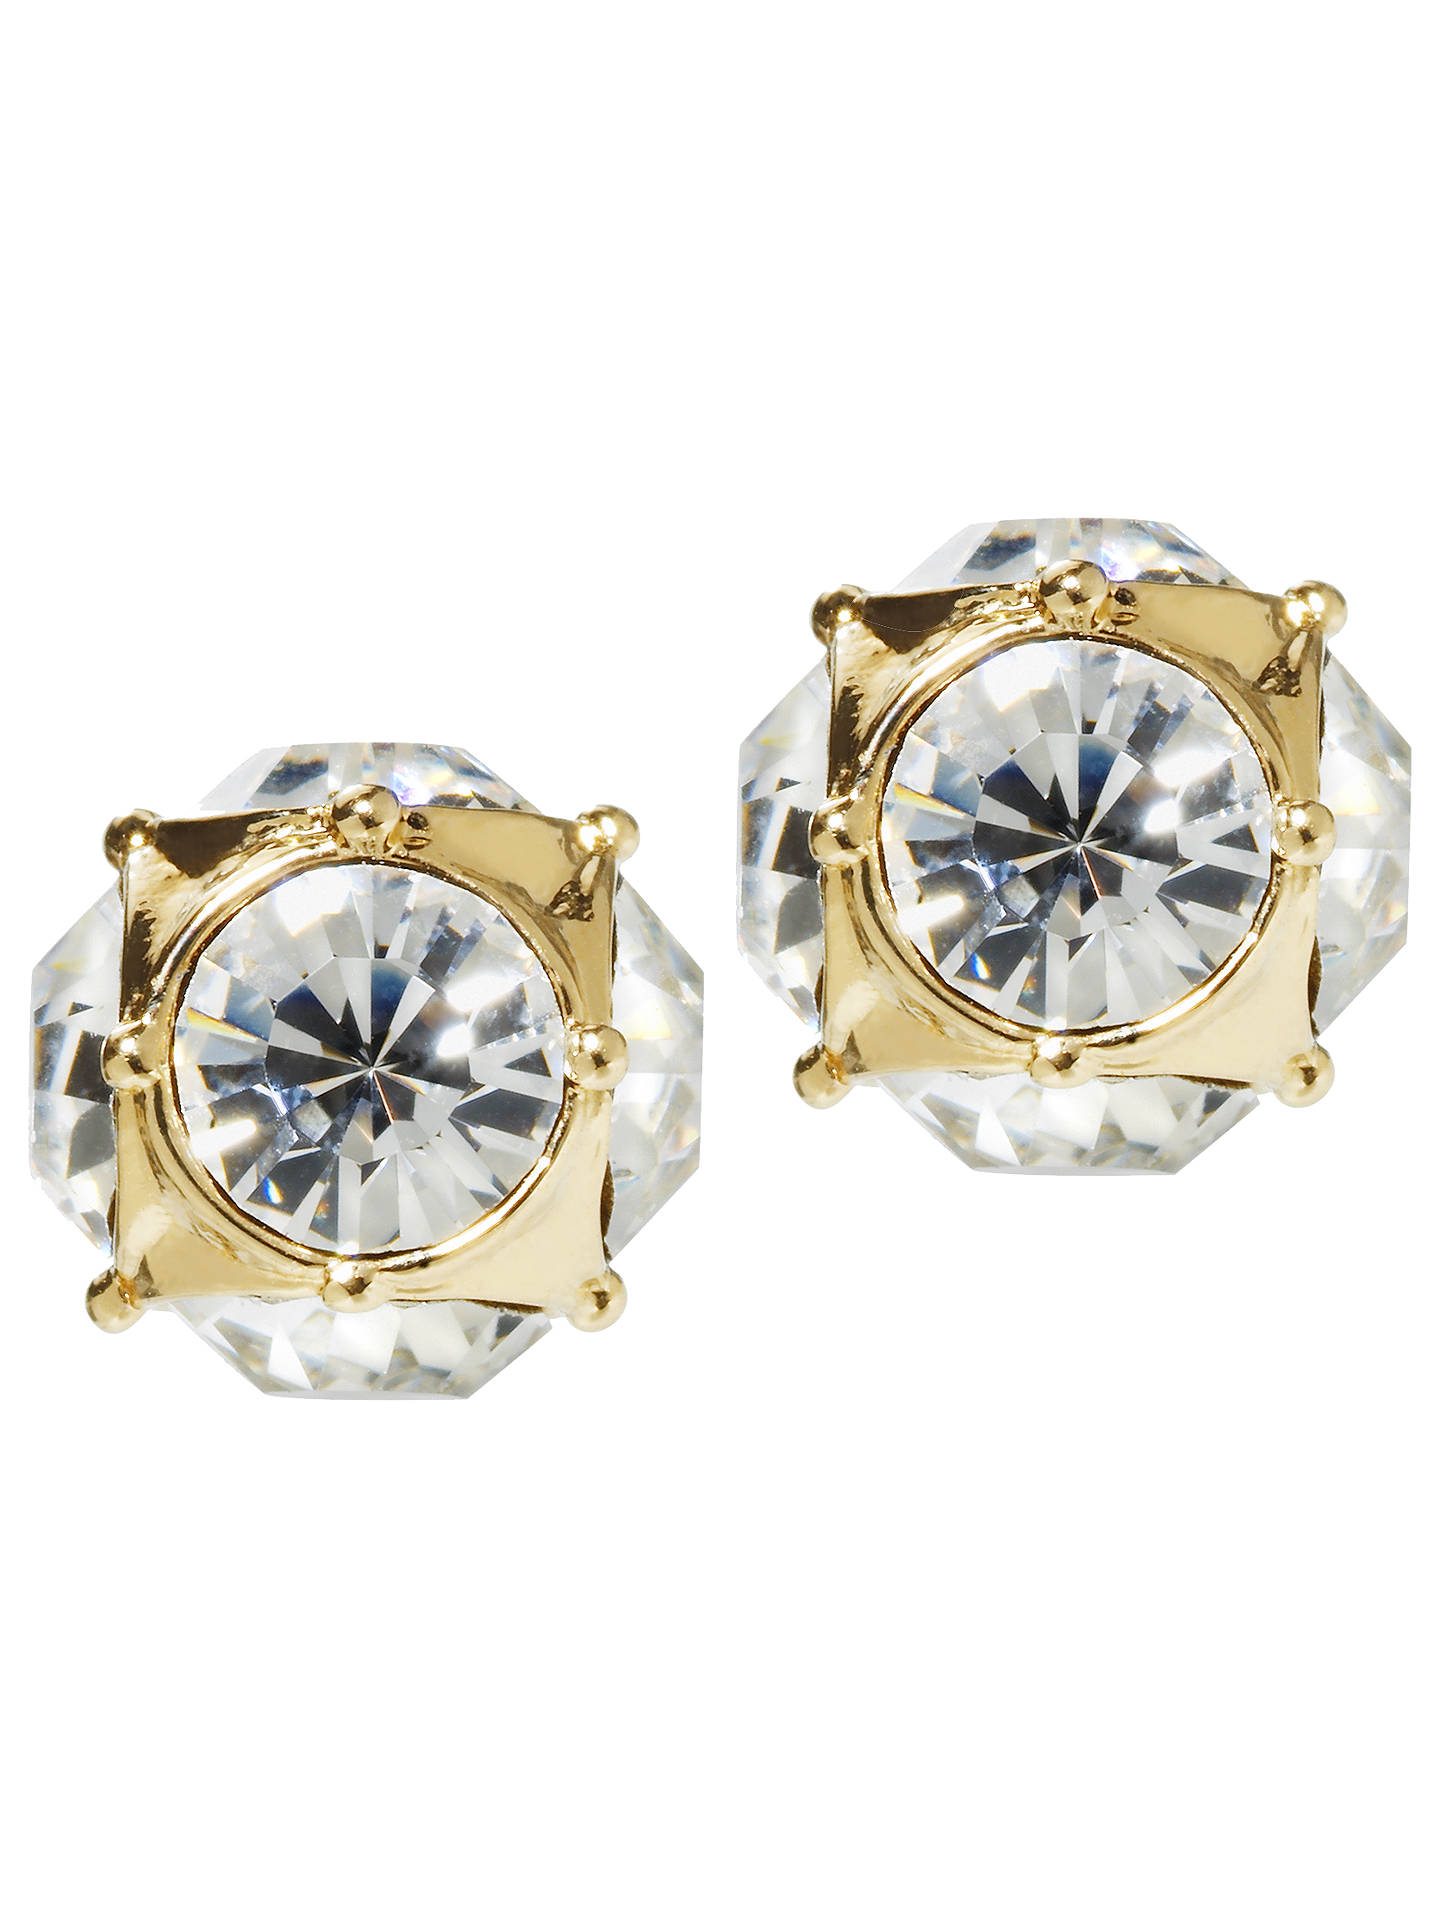 b2fc27cc3 Buy kate spade new york Lady Marmalade Stud Earrings, Gold/Clear Online at  johnlewis